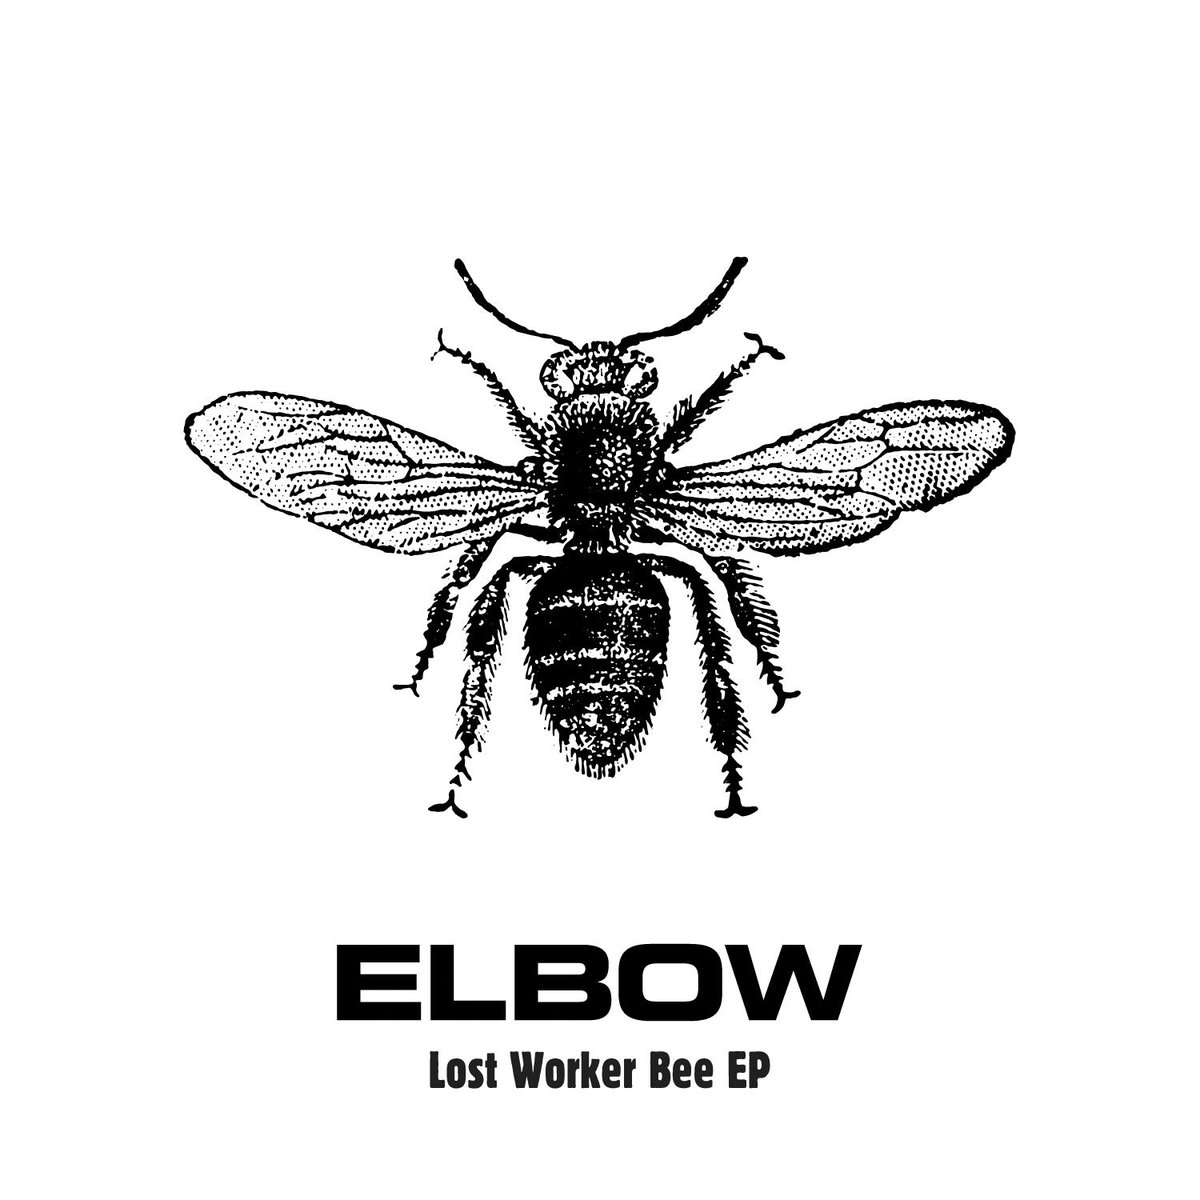 elbow release a new EP on 24th July. The 'Lost Worker Bee' EP has 4 new songs based on their home town of Manchester. http://t.co/ncyfJlQwCb